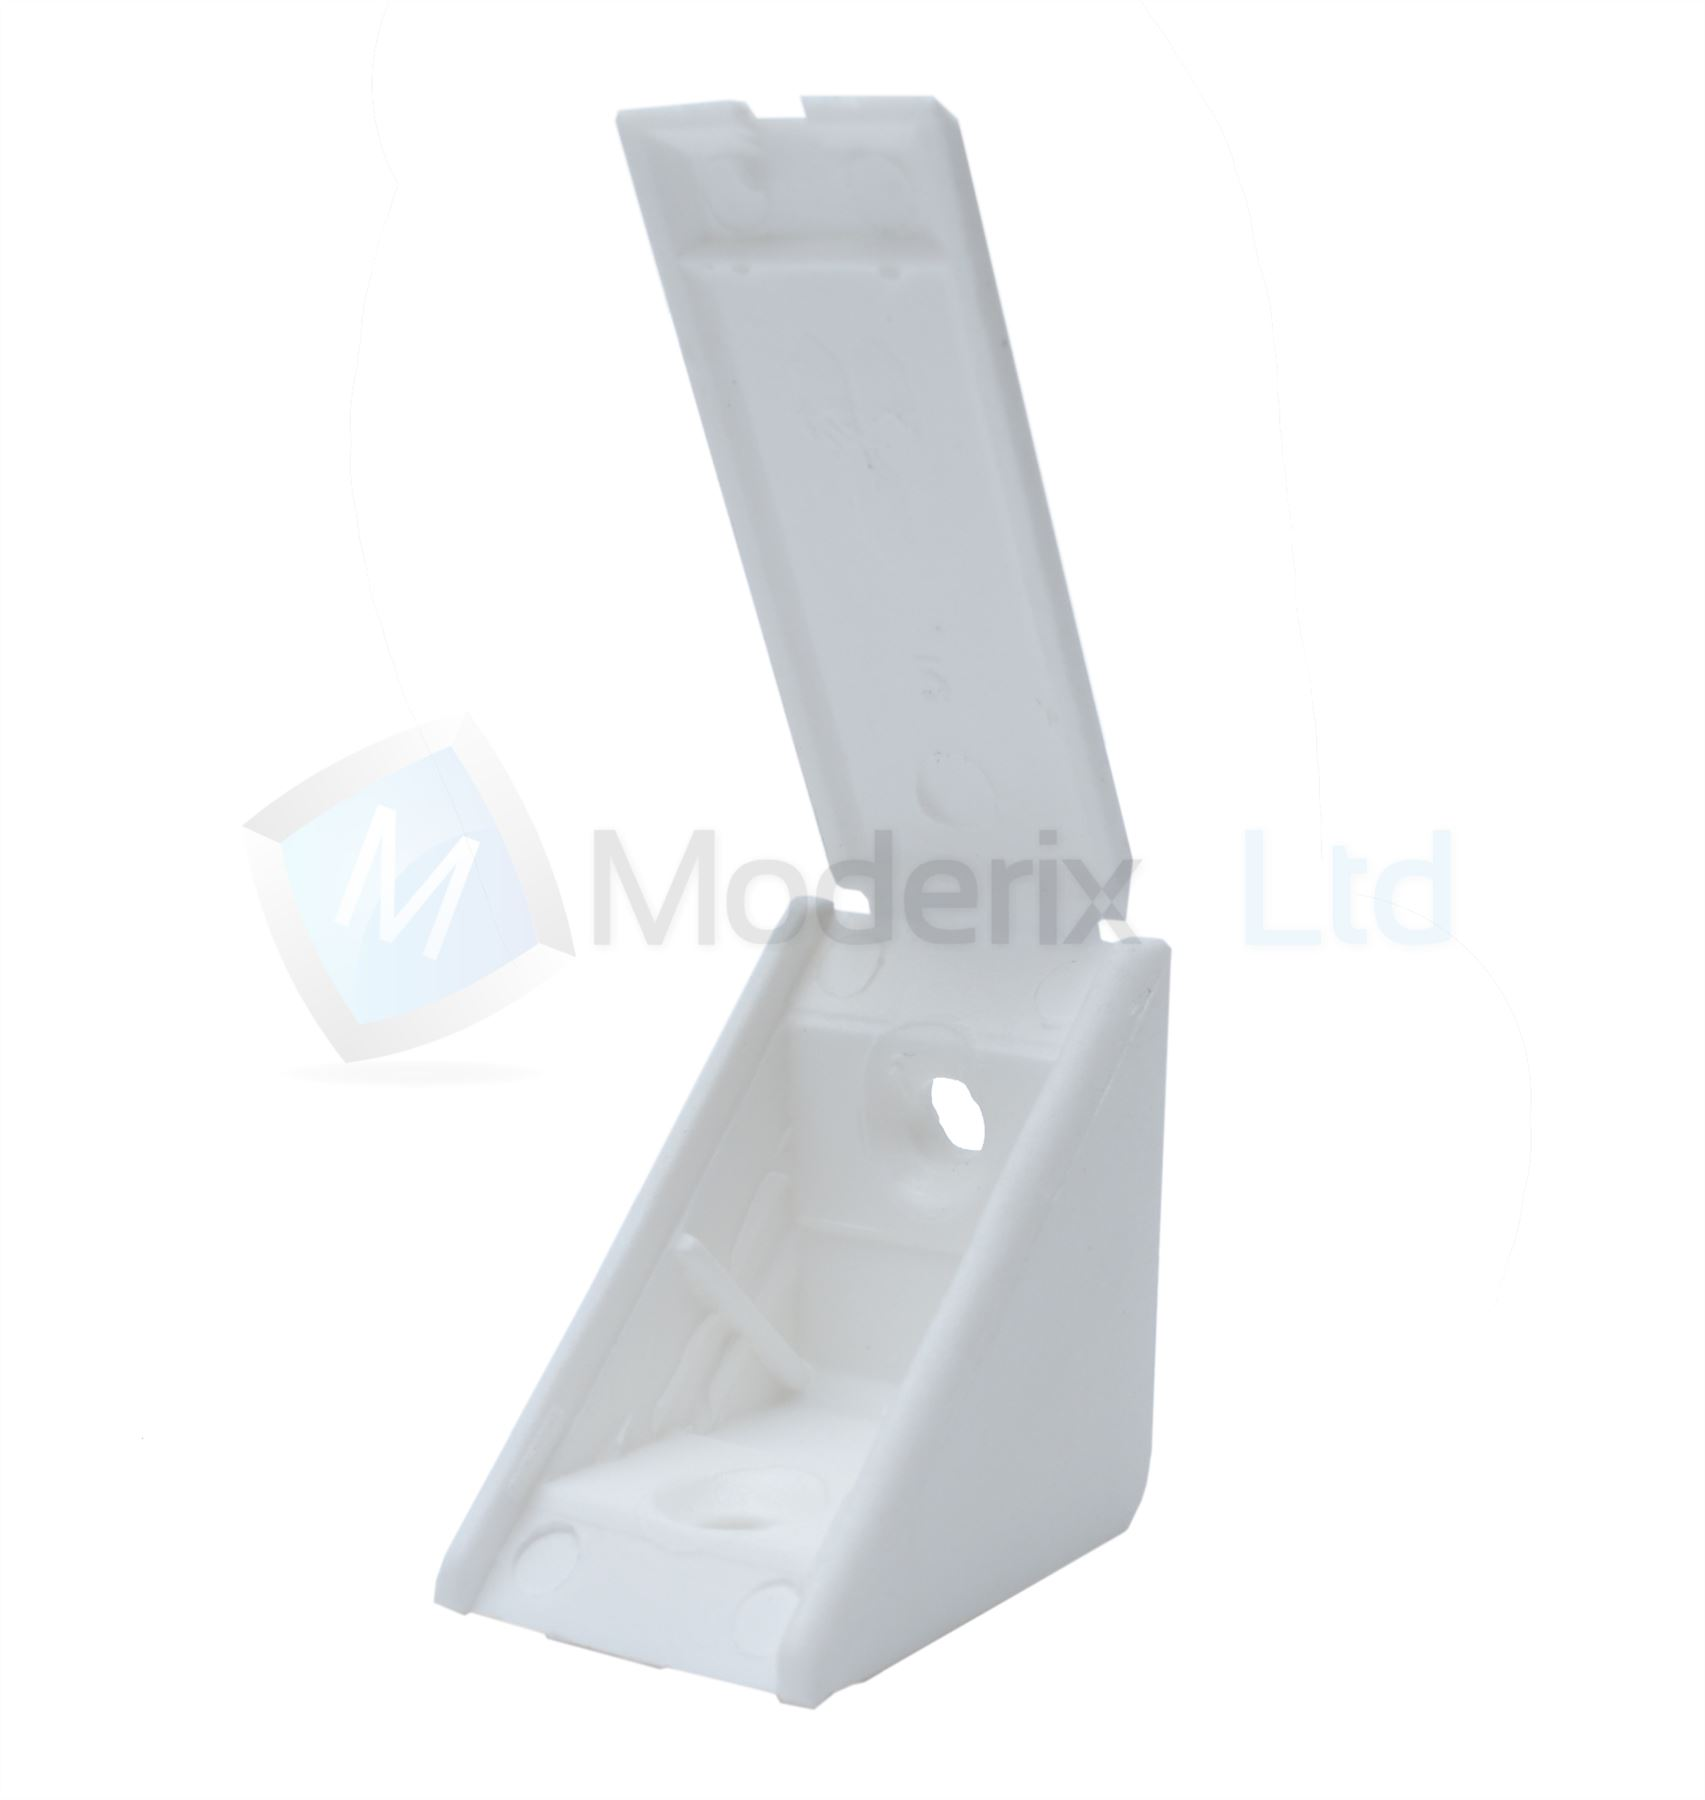 KITCHEN CABINET SHELF SUPPORTS PEGS PINS PLASTIC Single